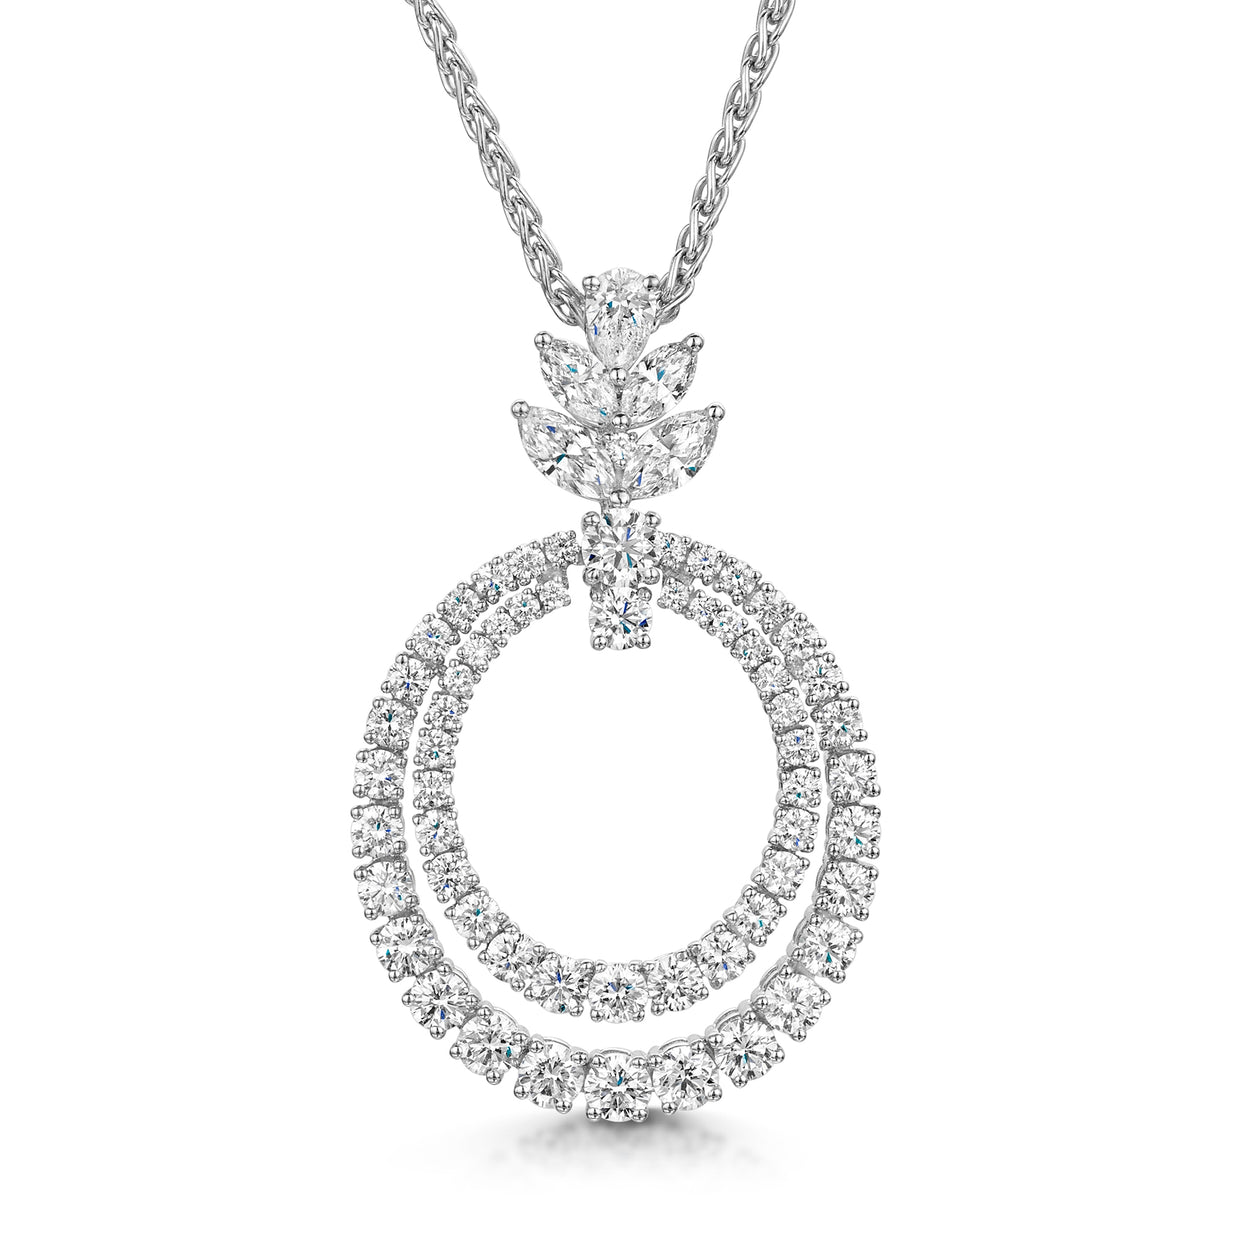 Double Hoop Diamond Pendant in 18ct White Gold-Hamilton & Inches